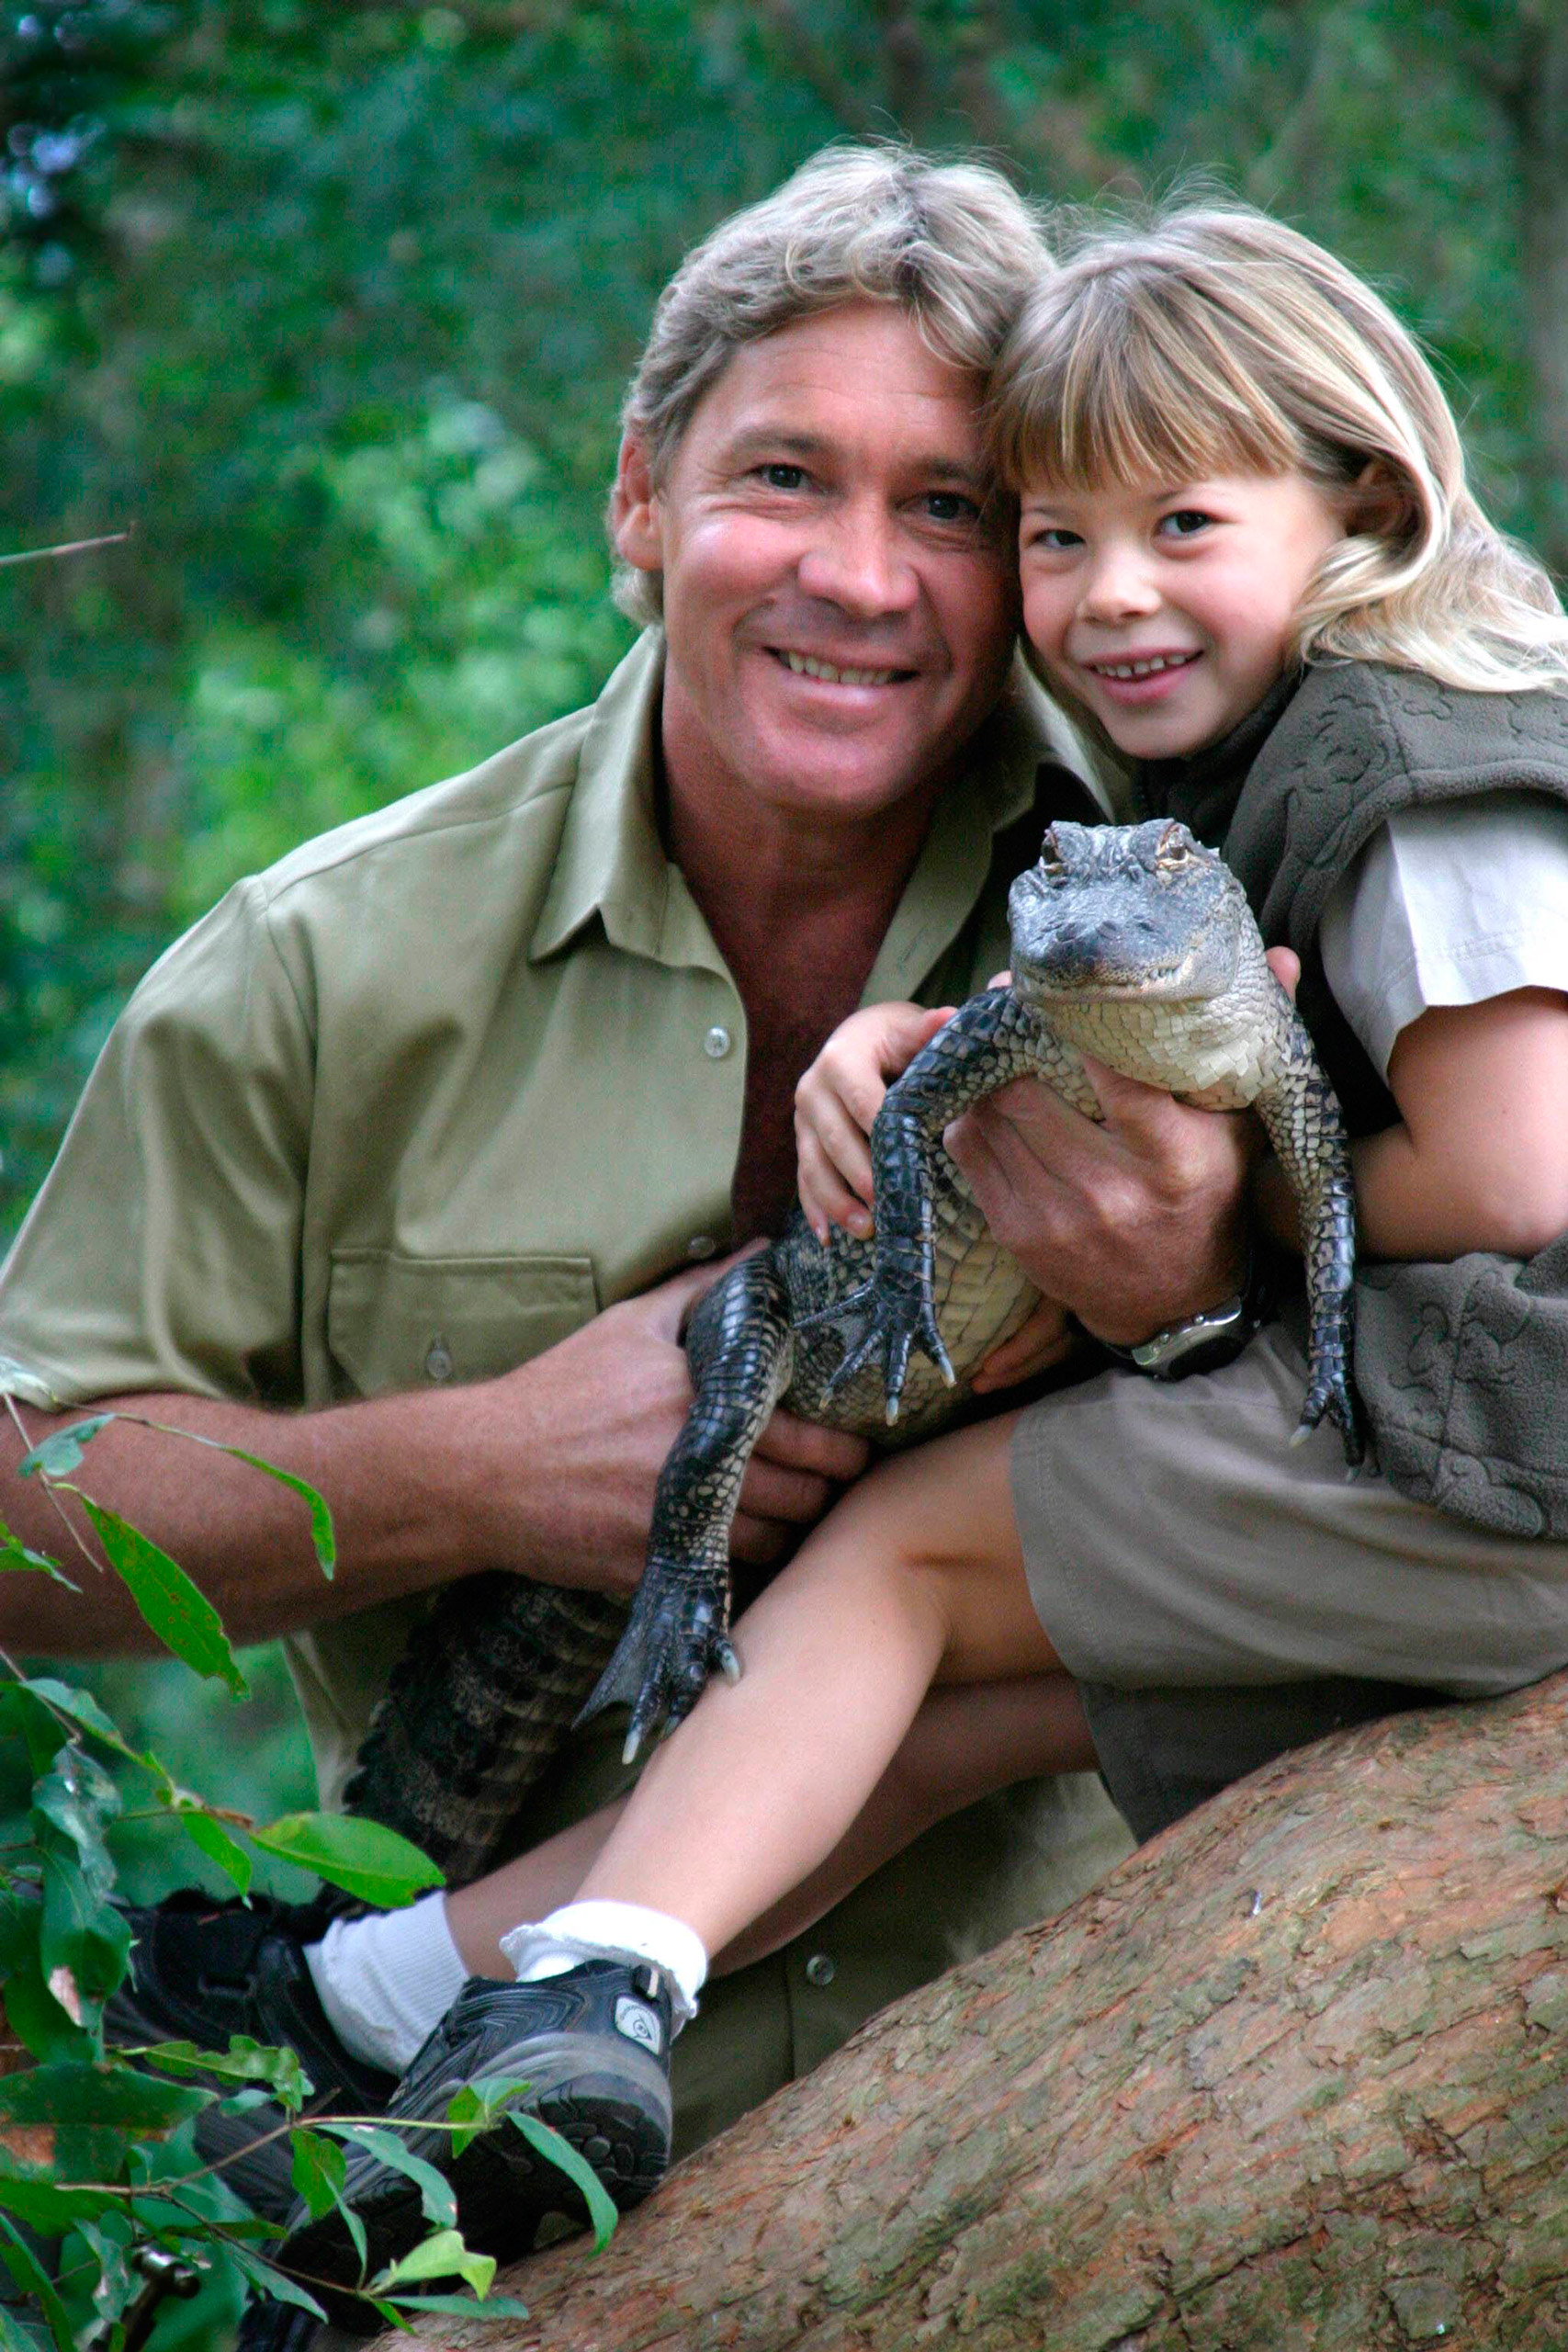 Steve Irwin with his daughter, Bindi Irwin, and a 3-year-old alligator called 'Russ' at Australia Zoo on Queensland's Sunshine Coast, Australia, on June 25, 2006.